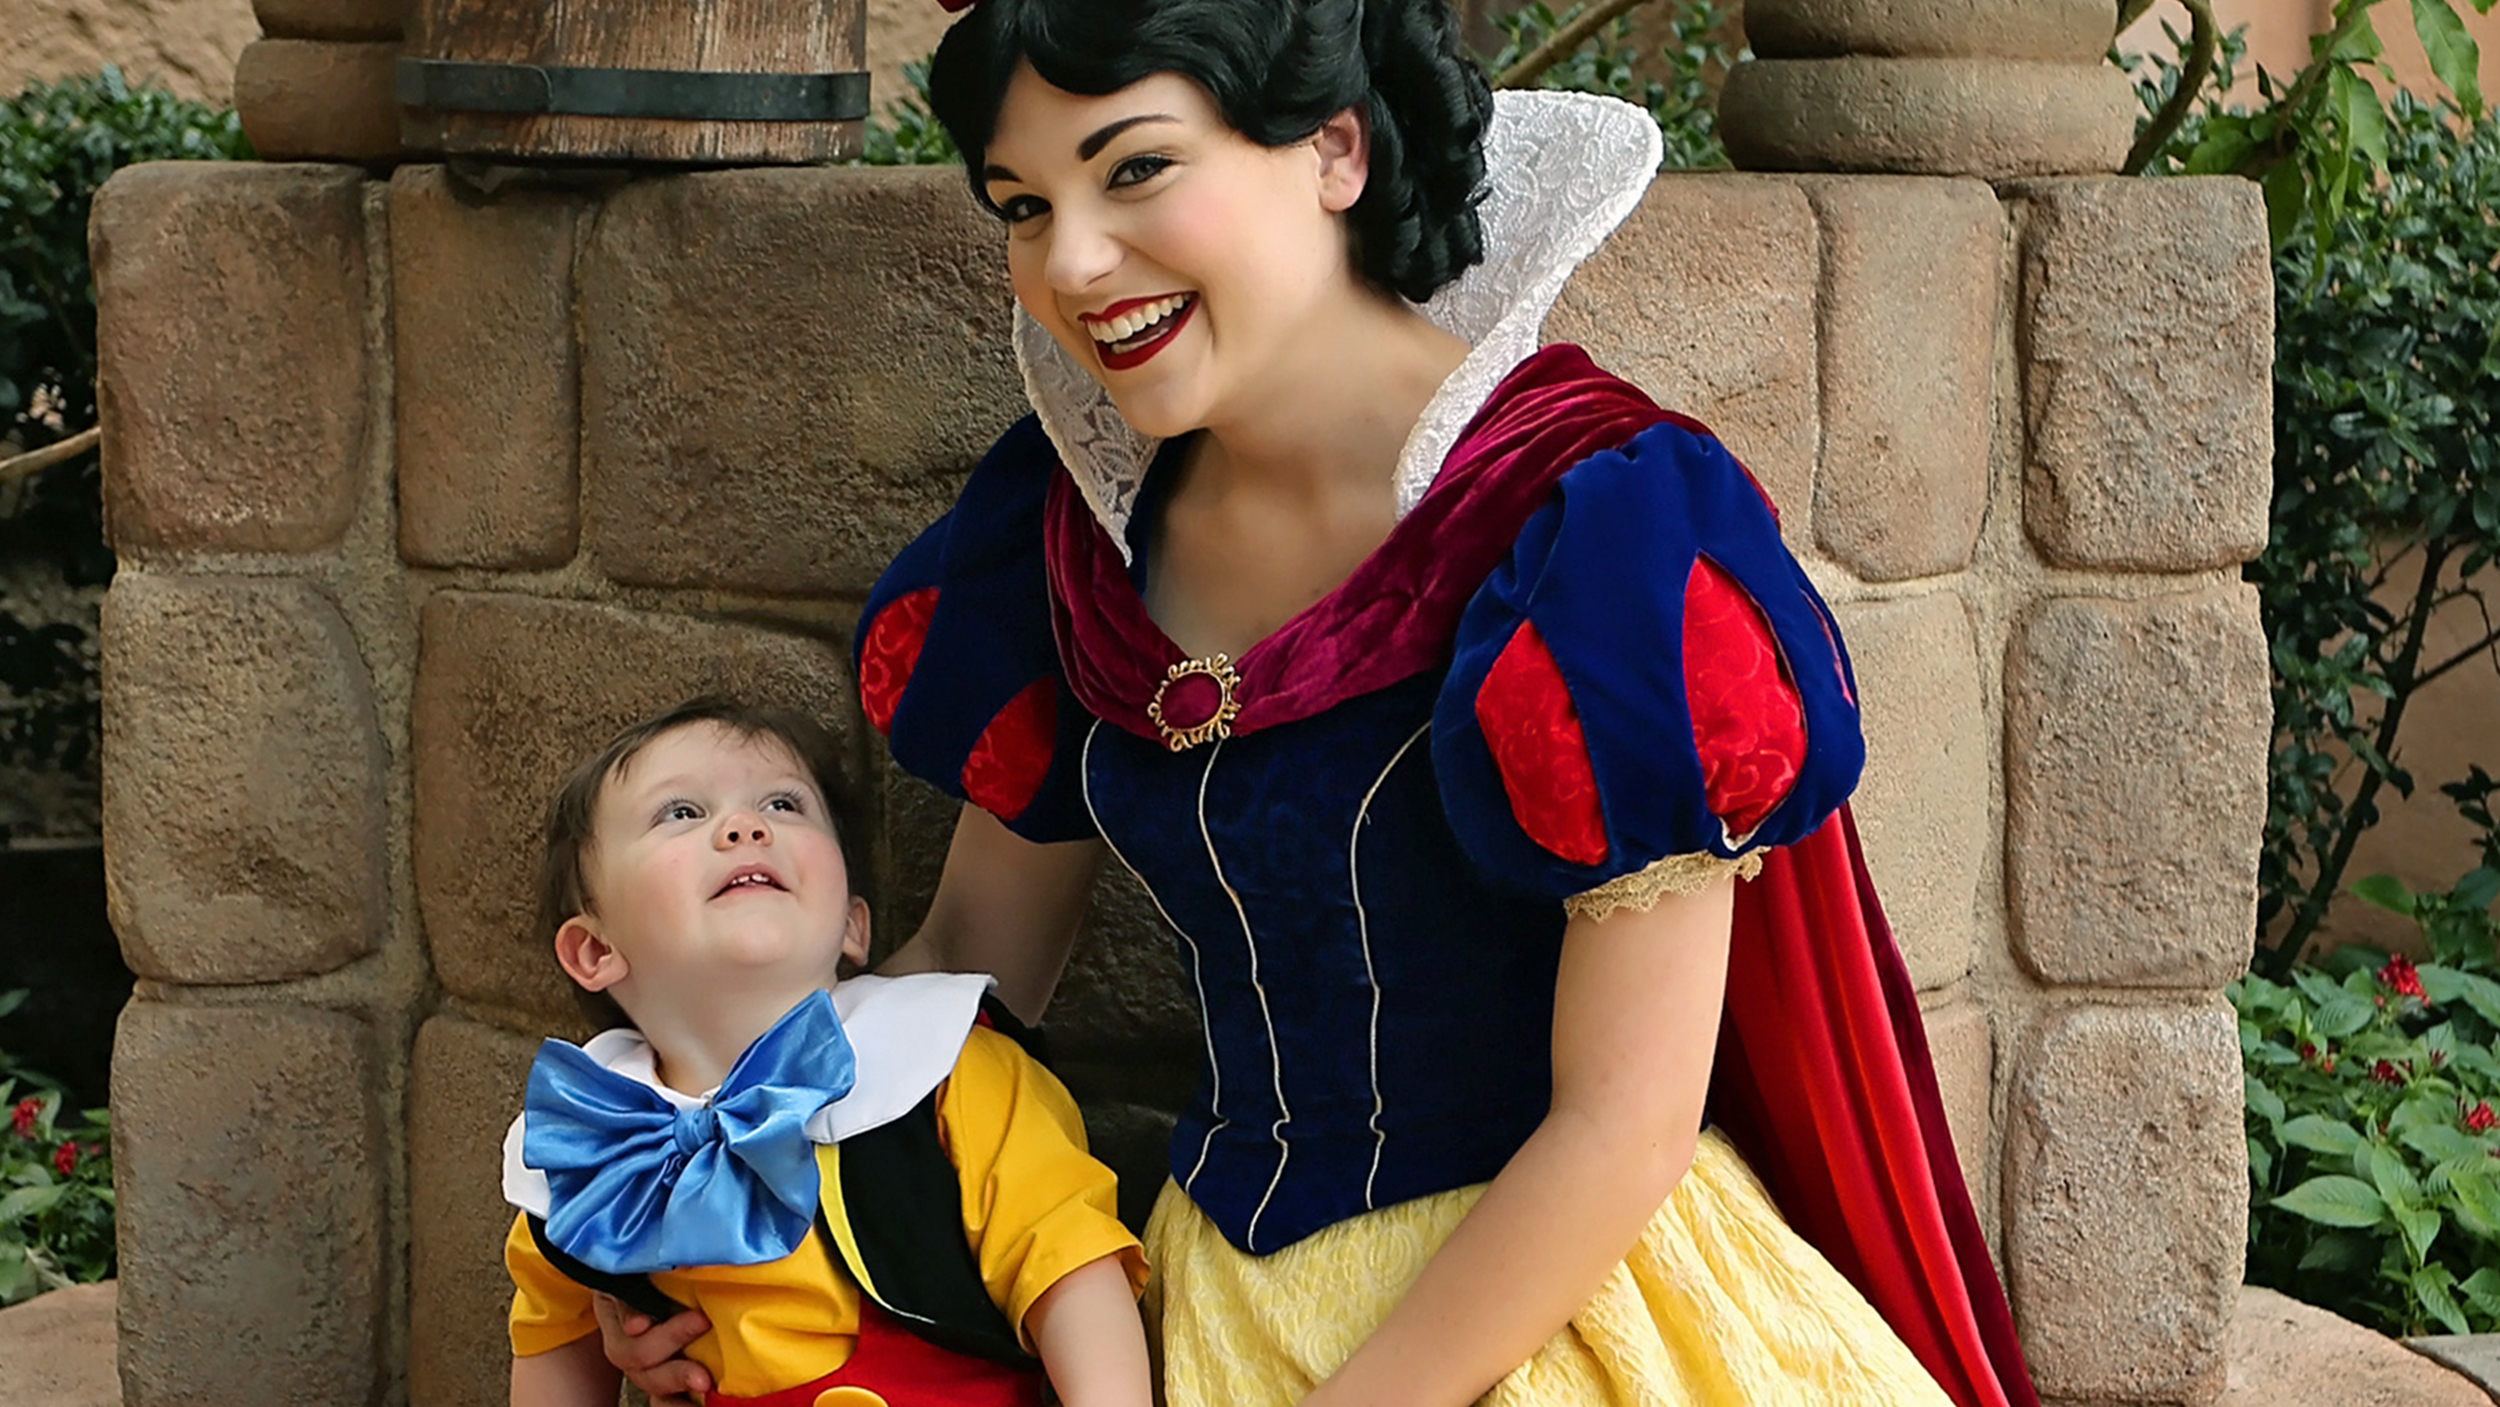 Snow White Toddler With Autism Share Tender Moment